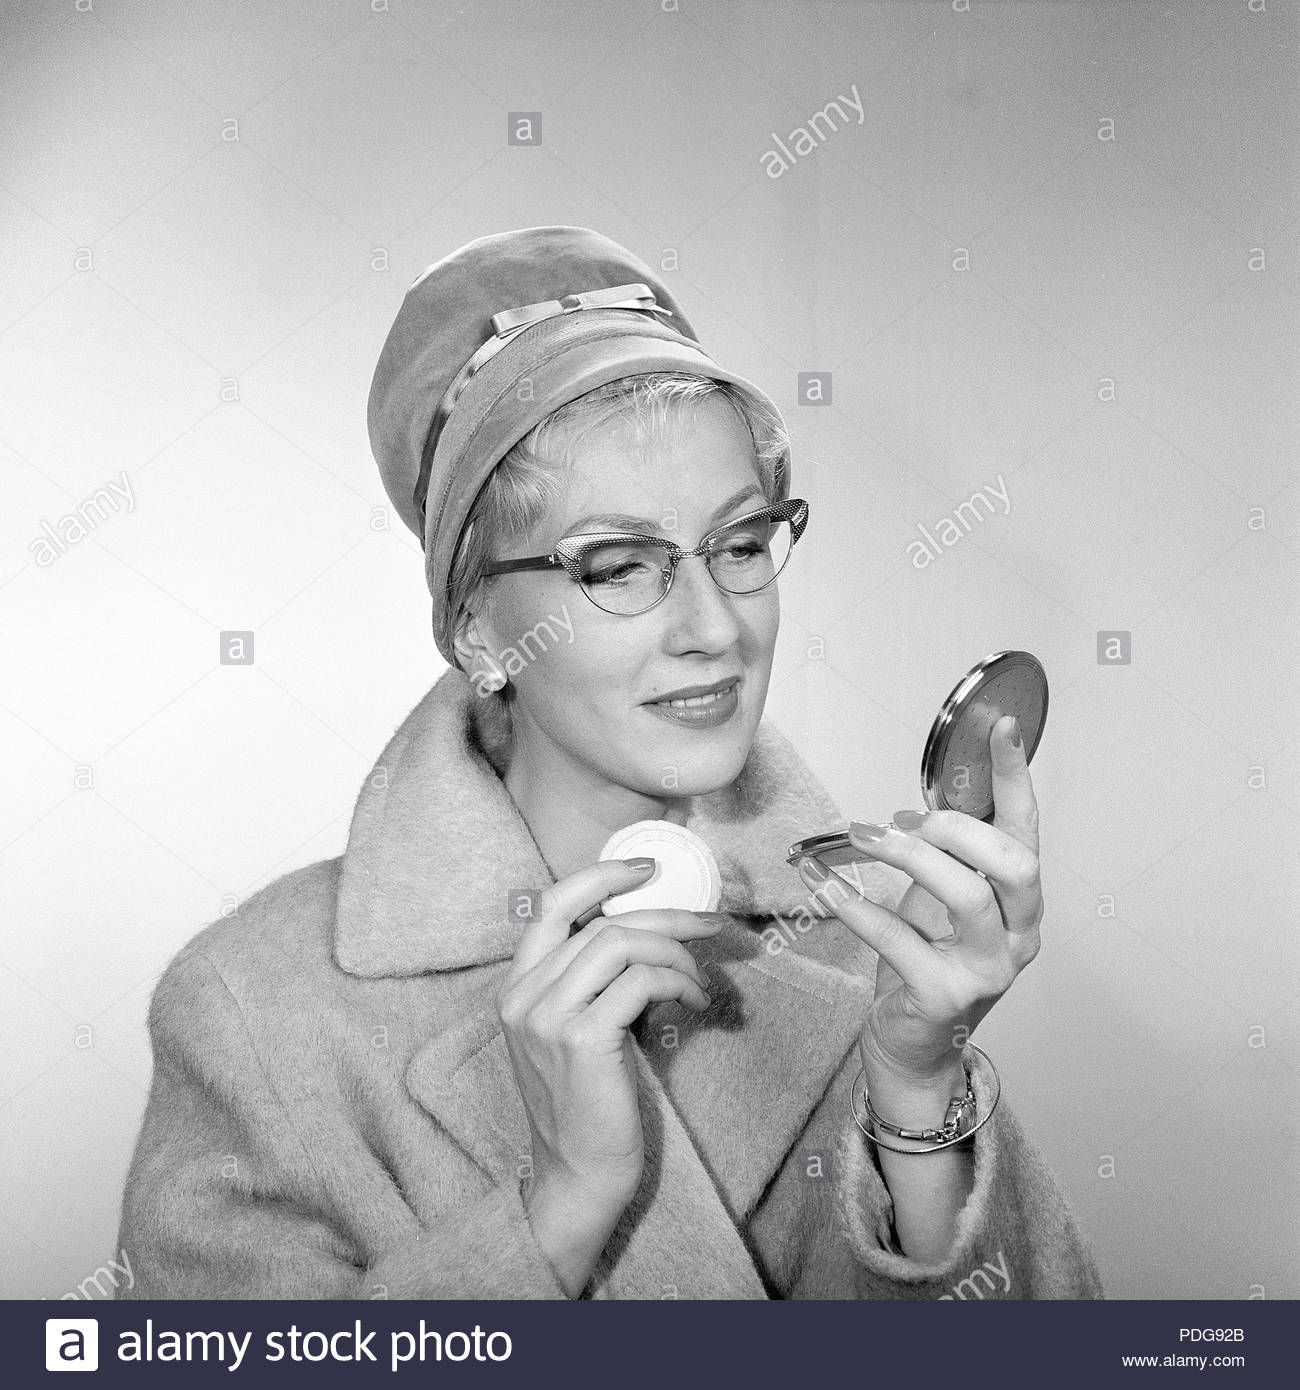 Download this stock image 1950s makeup. A young woman is